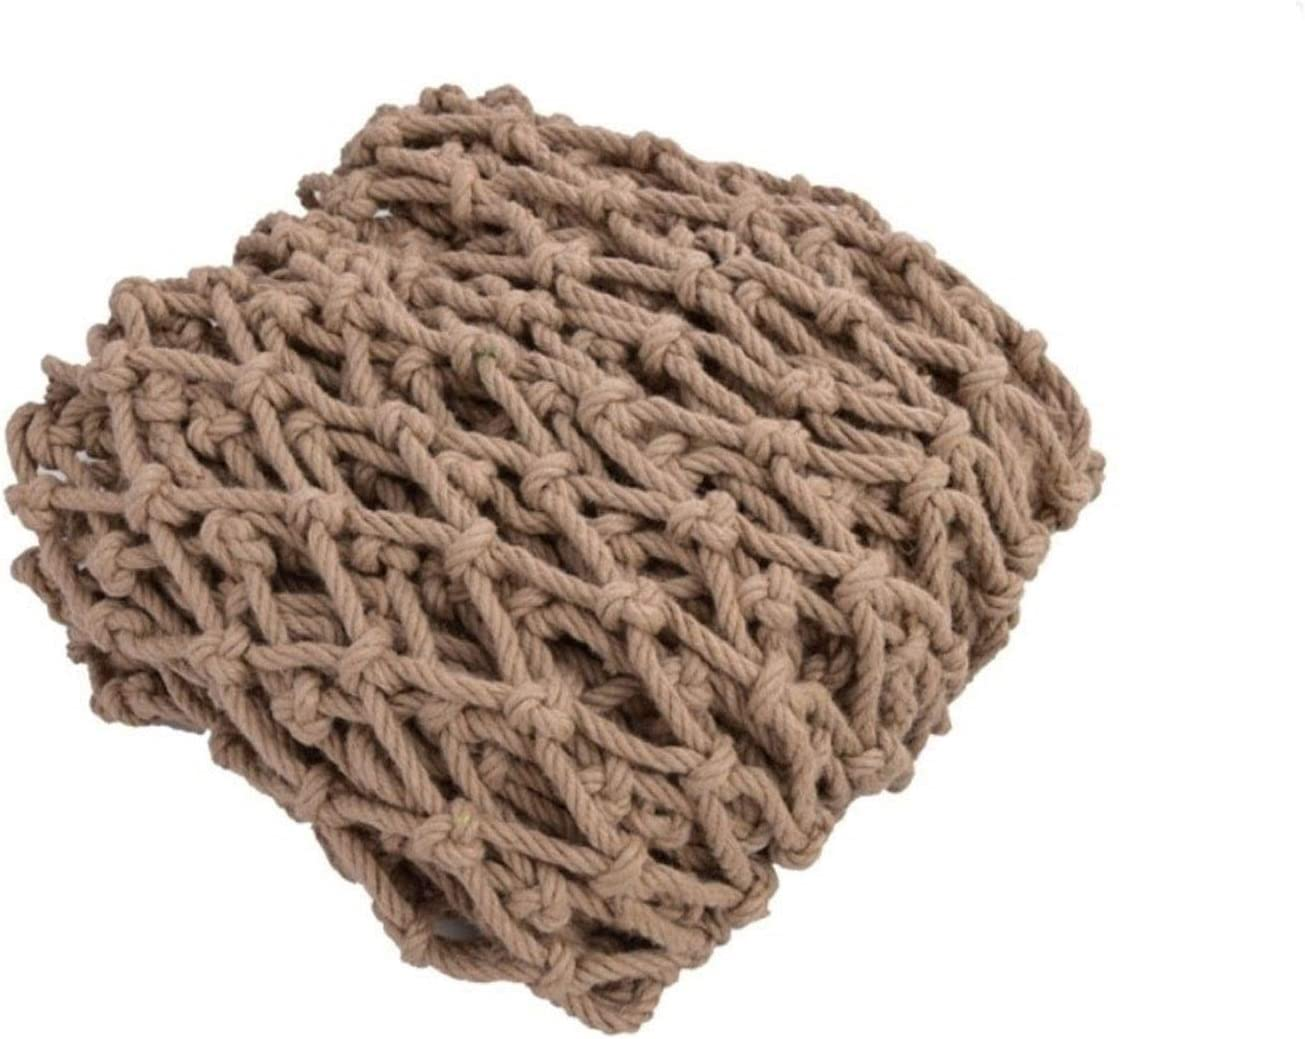 overseas WANIAN Outdoor Mesh Rope Climbing At the price of surprise Netting Retro Duty Heavy Safe